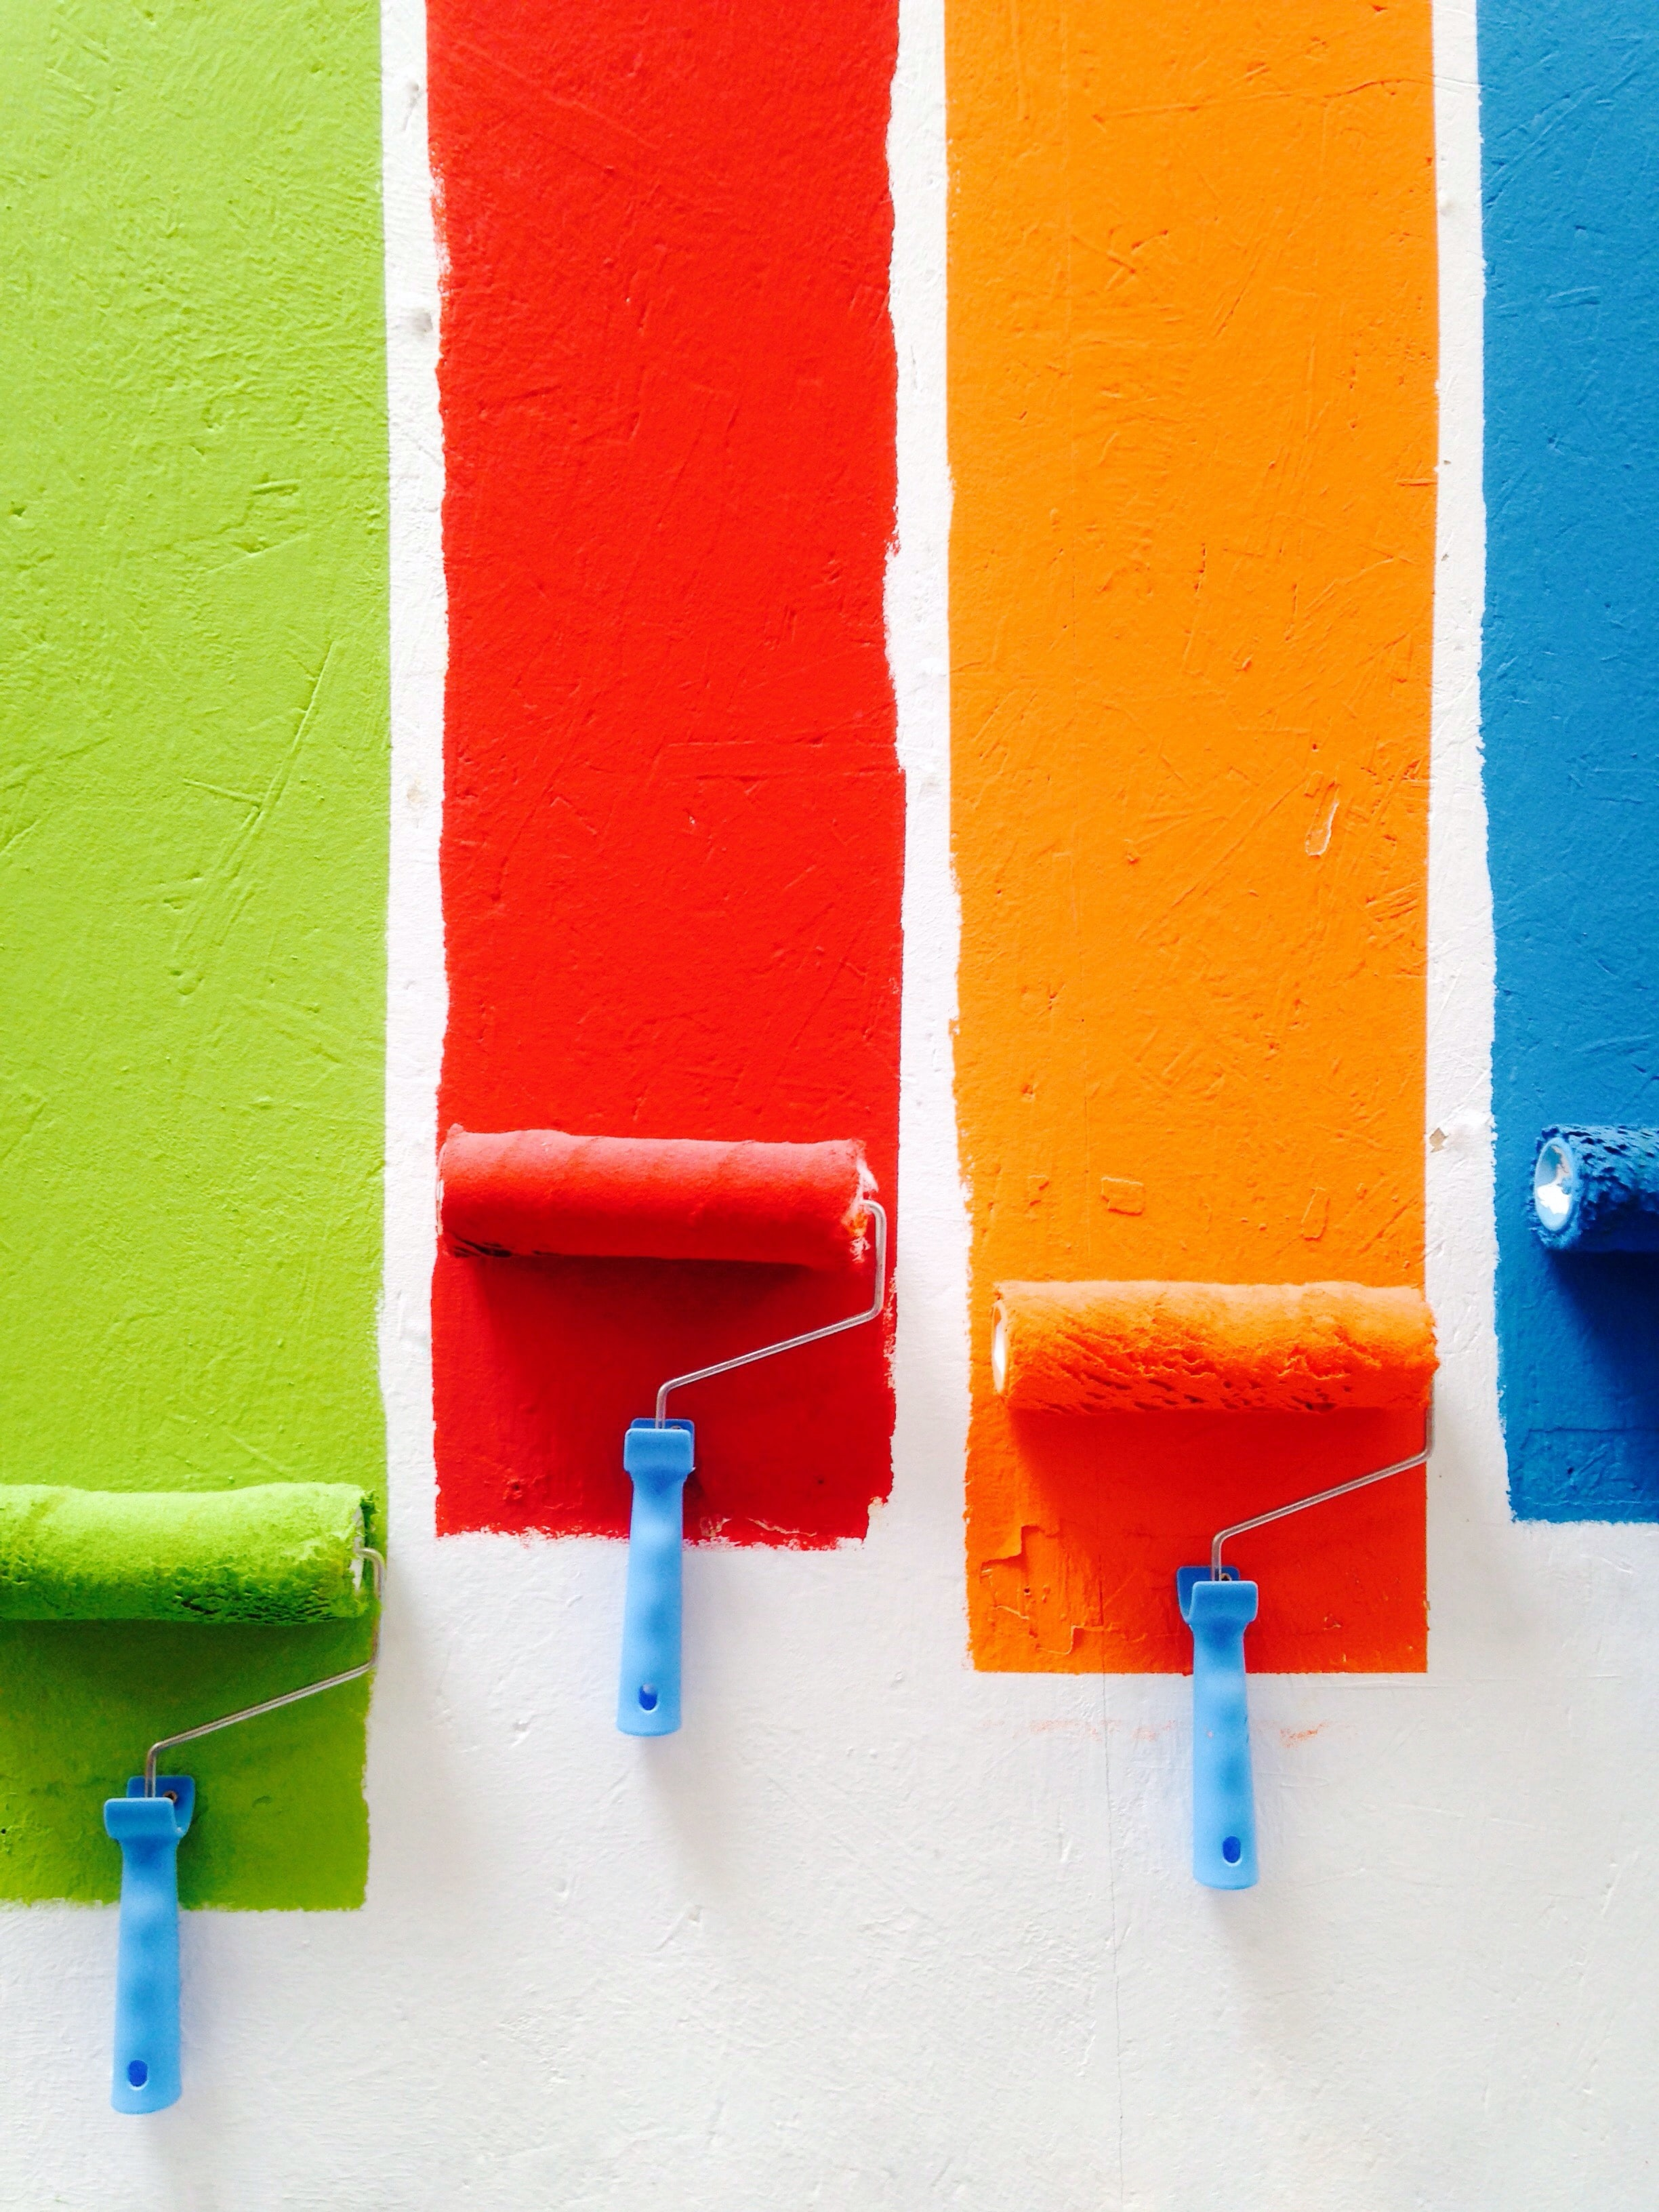 four orange, green, blue, and red paint rollers